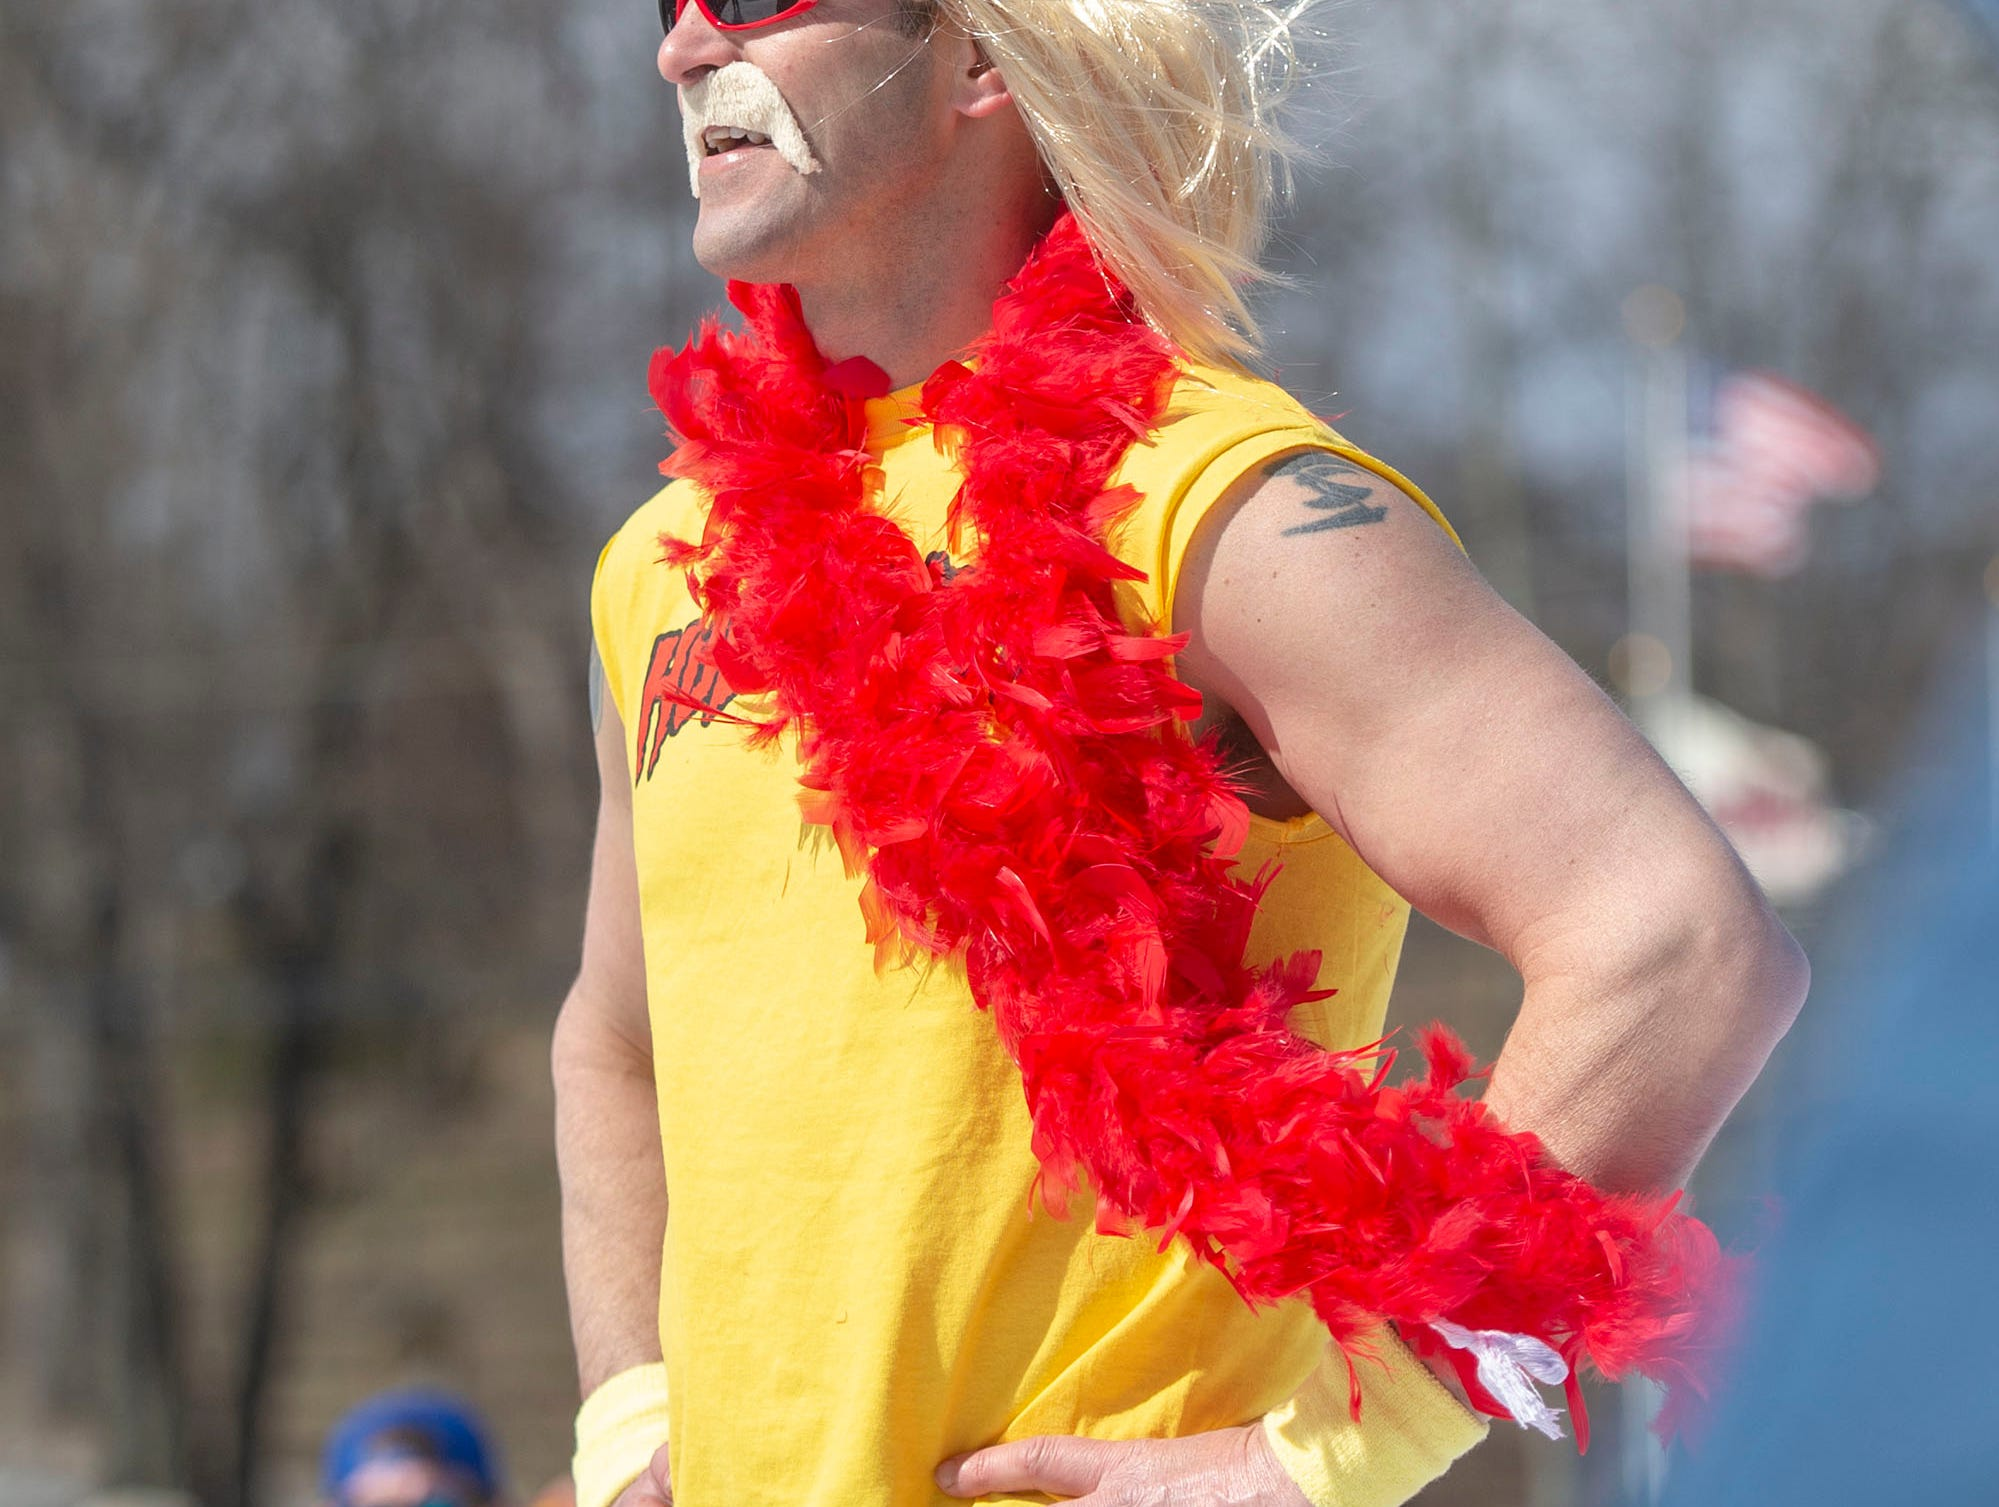 'Hulk Hogan' won the annual costume competition at the end-of-season pond skimming at Roundtop Mountain Resort on Saturday, March 16, 2019.